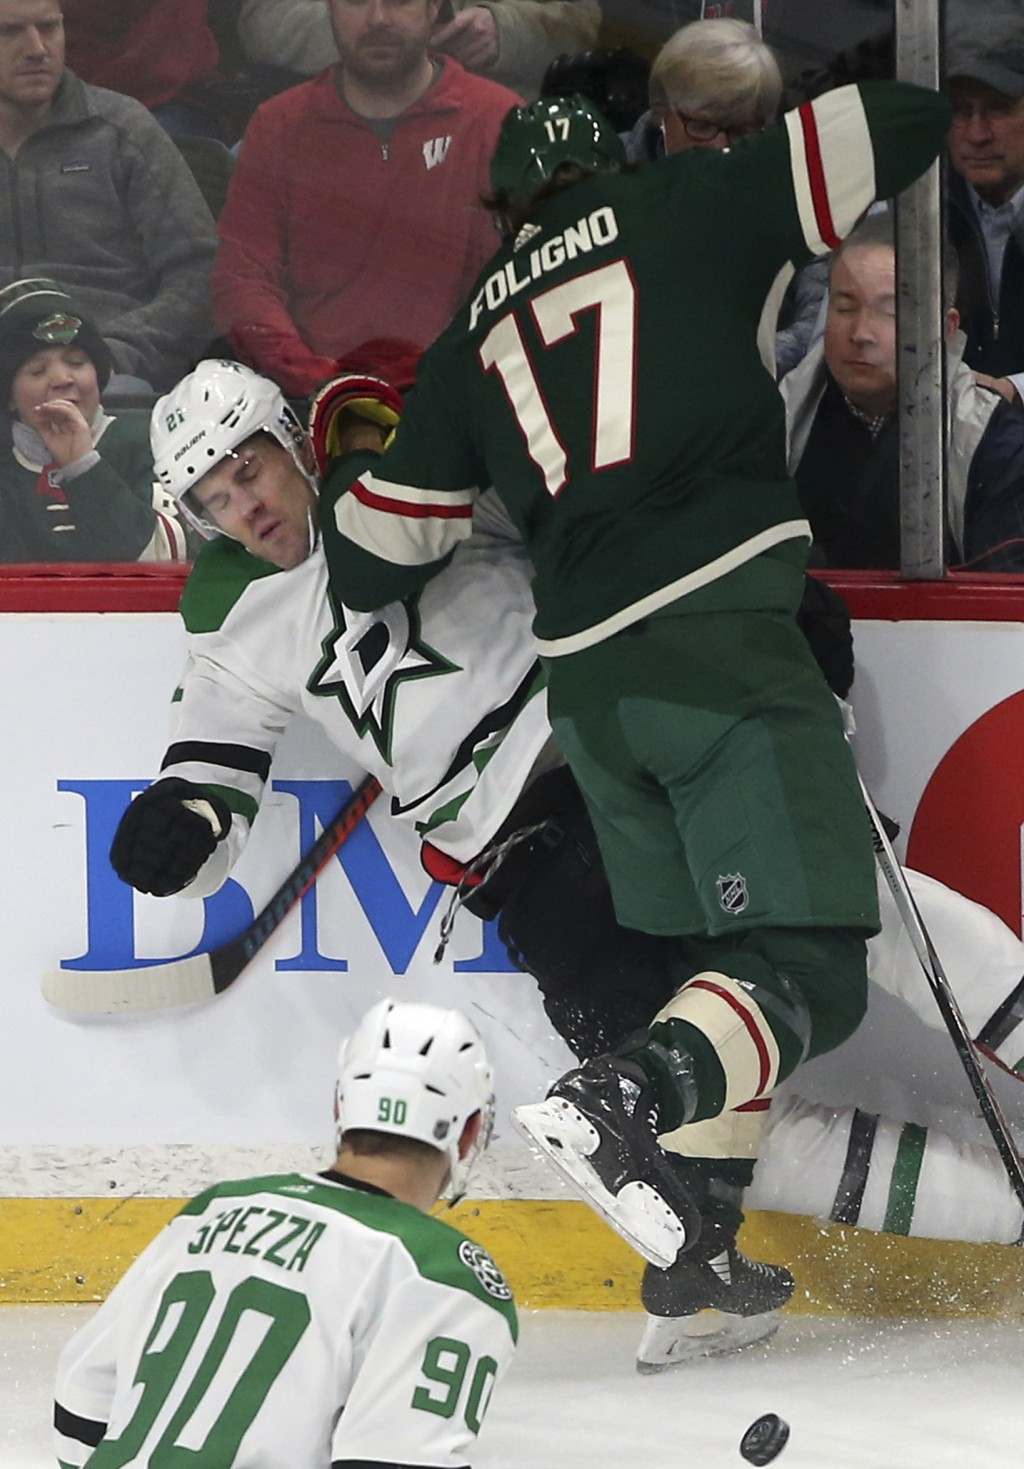 Dallas Stars' Ben Lovejoy, left, is checked into the boards by Minnesota Wild's Marcus Foligno in the first period of an NHL hockey game Thursday, Mar